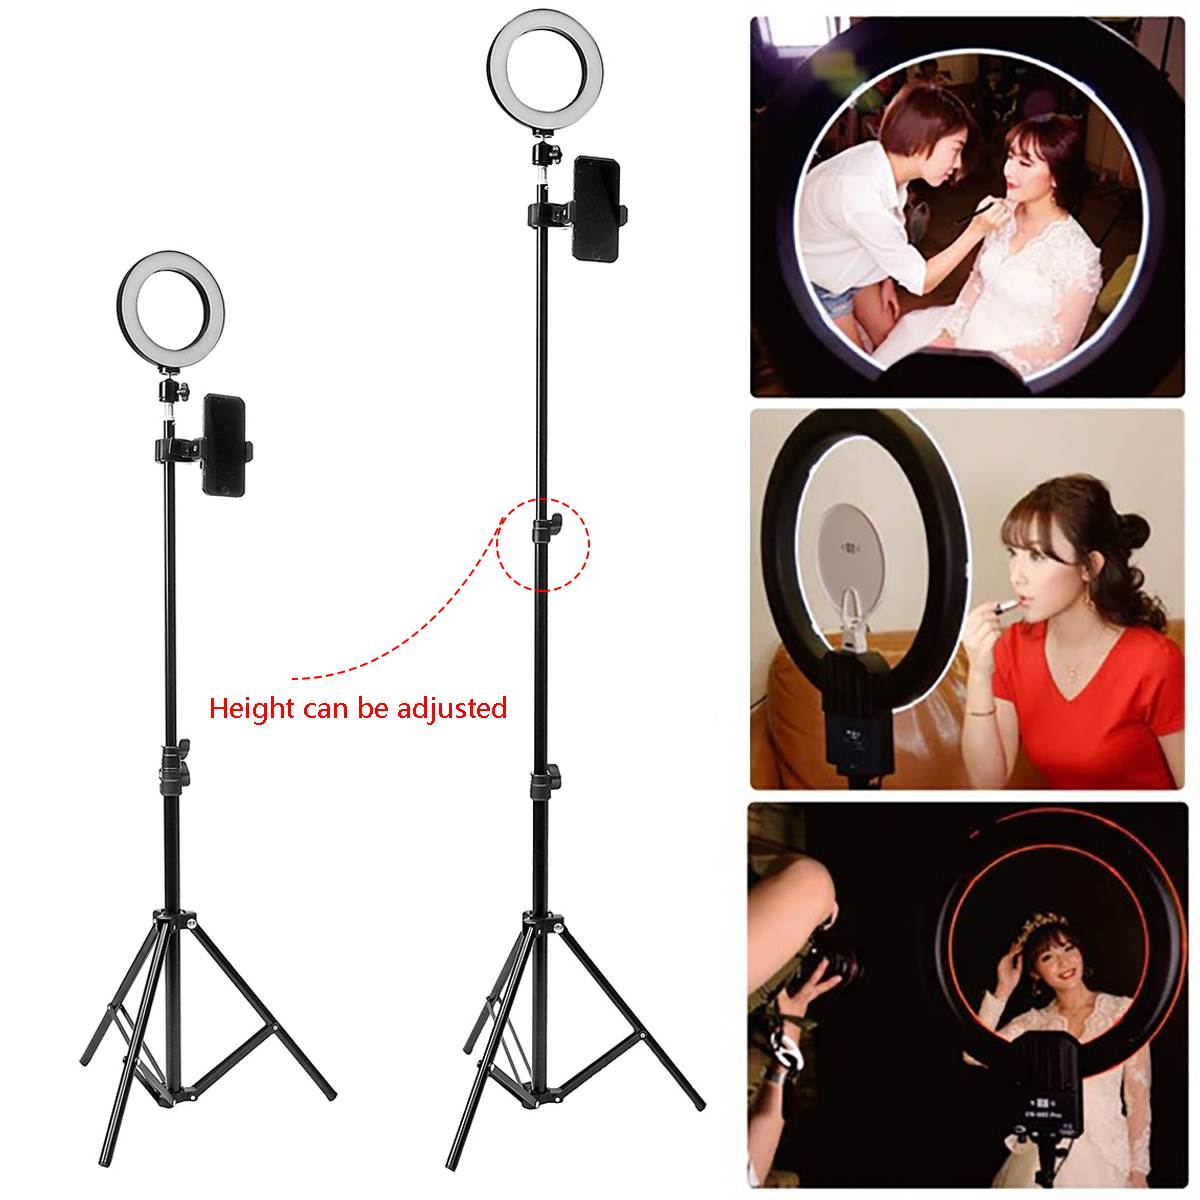 5500K LED Ring Lamp 16cm Dimmable Light Stand Kit Phone Photo Selfie Video Makeup Live Photographic 160cm Tripod Phone Holder